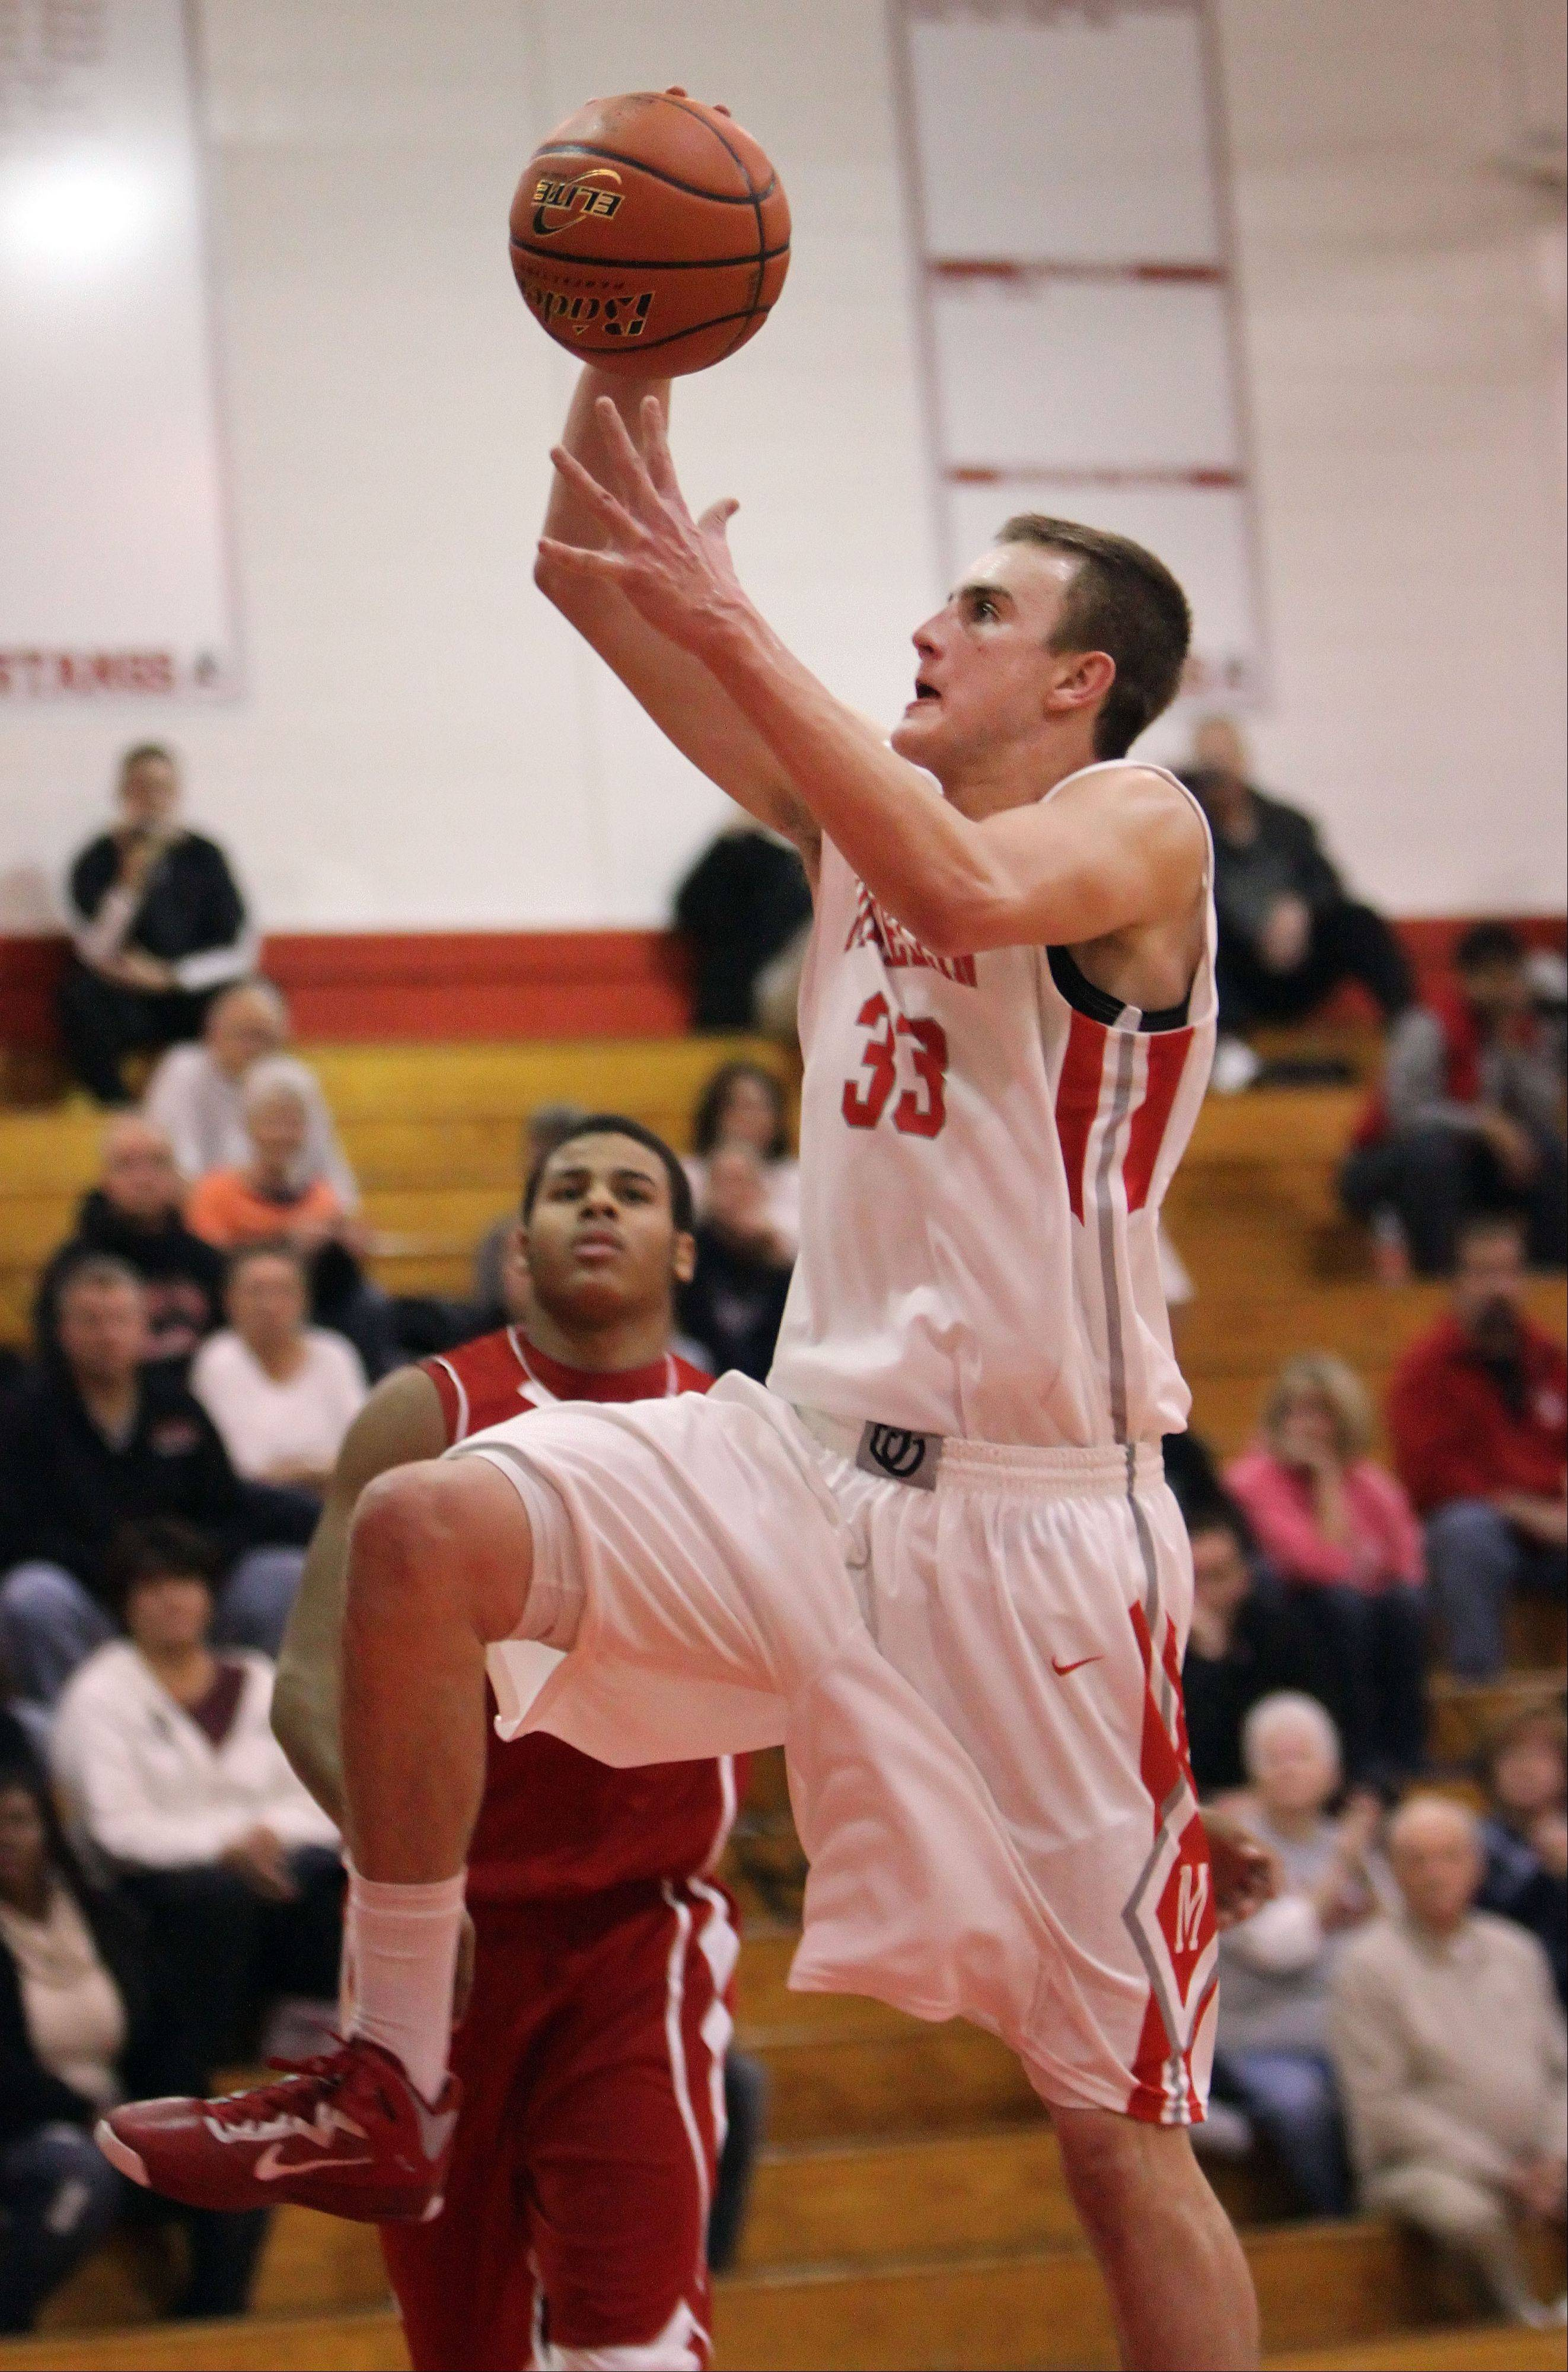 Mundelein�s Sean O�Brien drives in for a dunk during their game against Lakes Tuesday night at Mundelein.